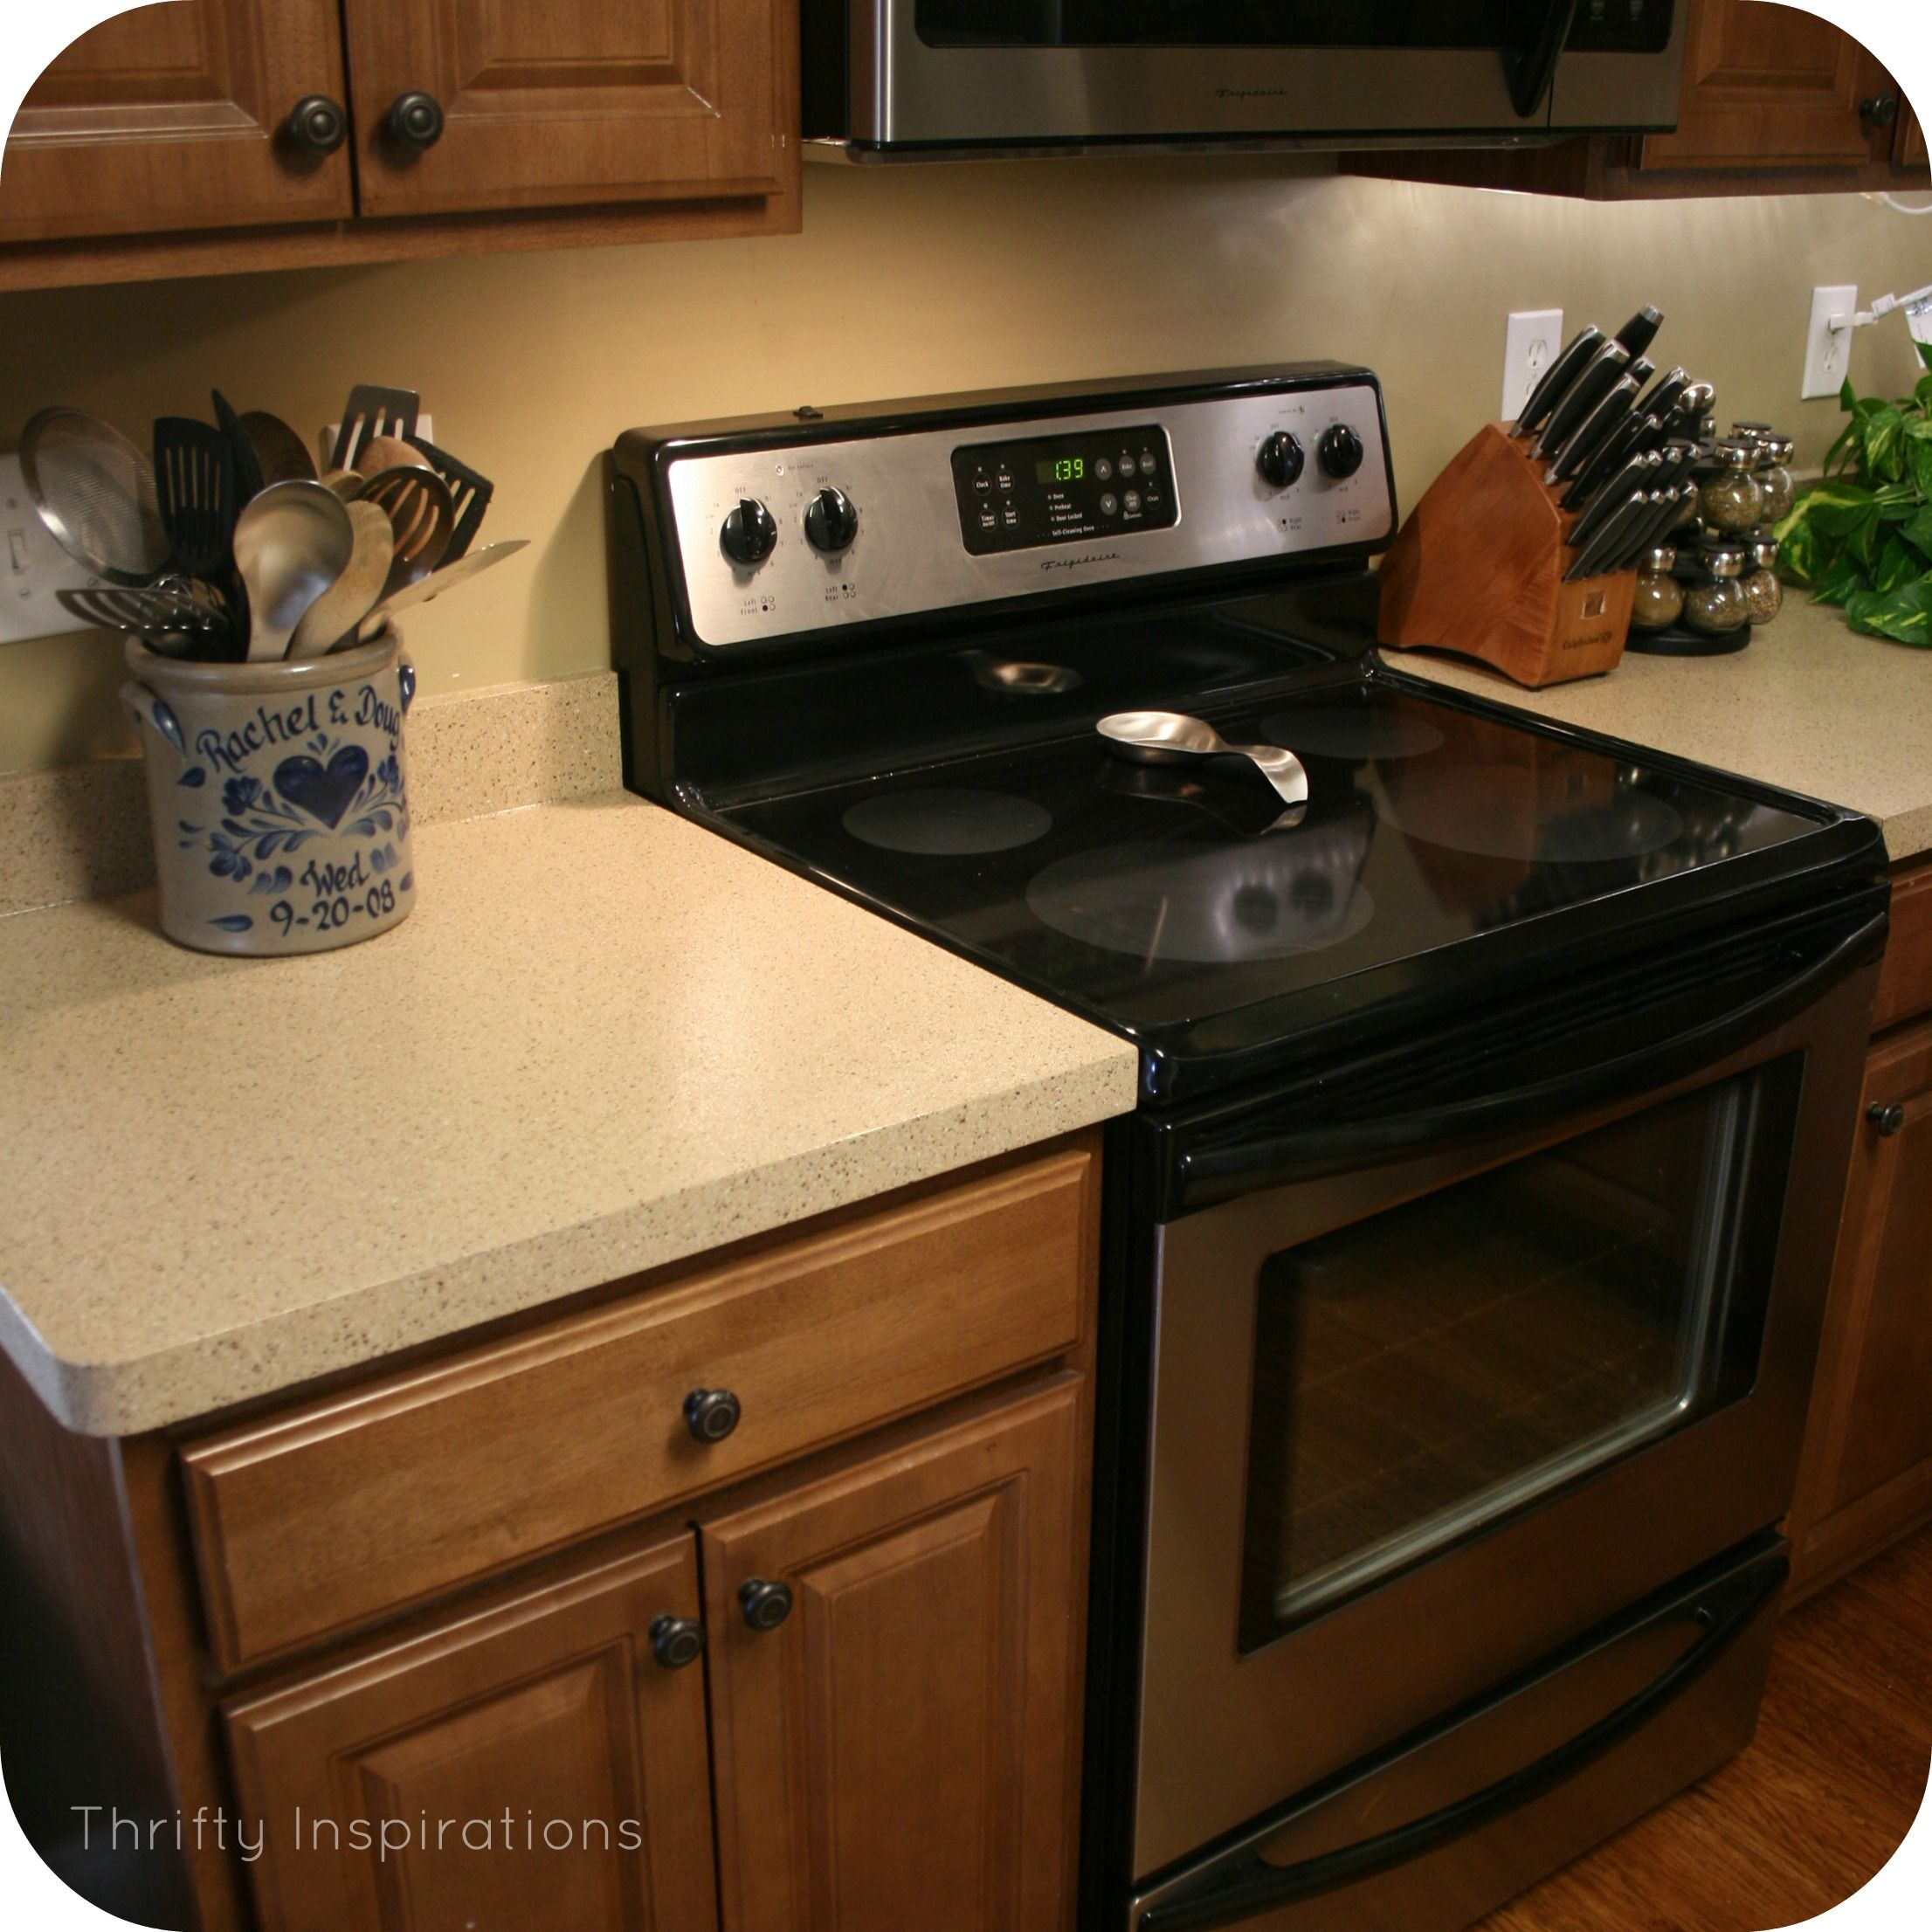 Painted Countertops With Rustoleum Product Countertop Transformations Kit In Desert Sand